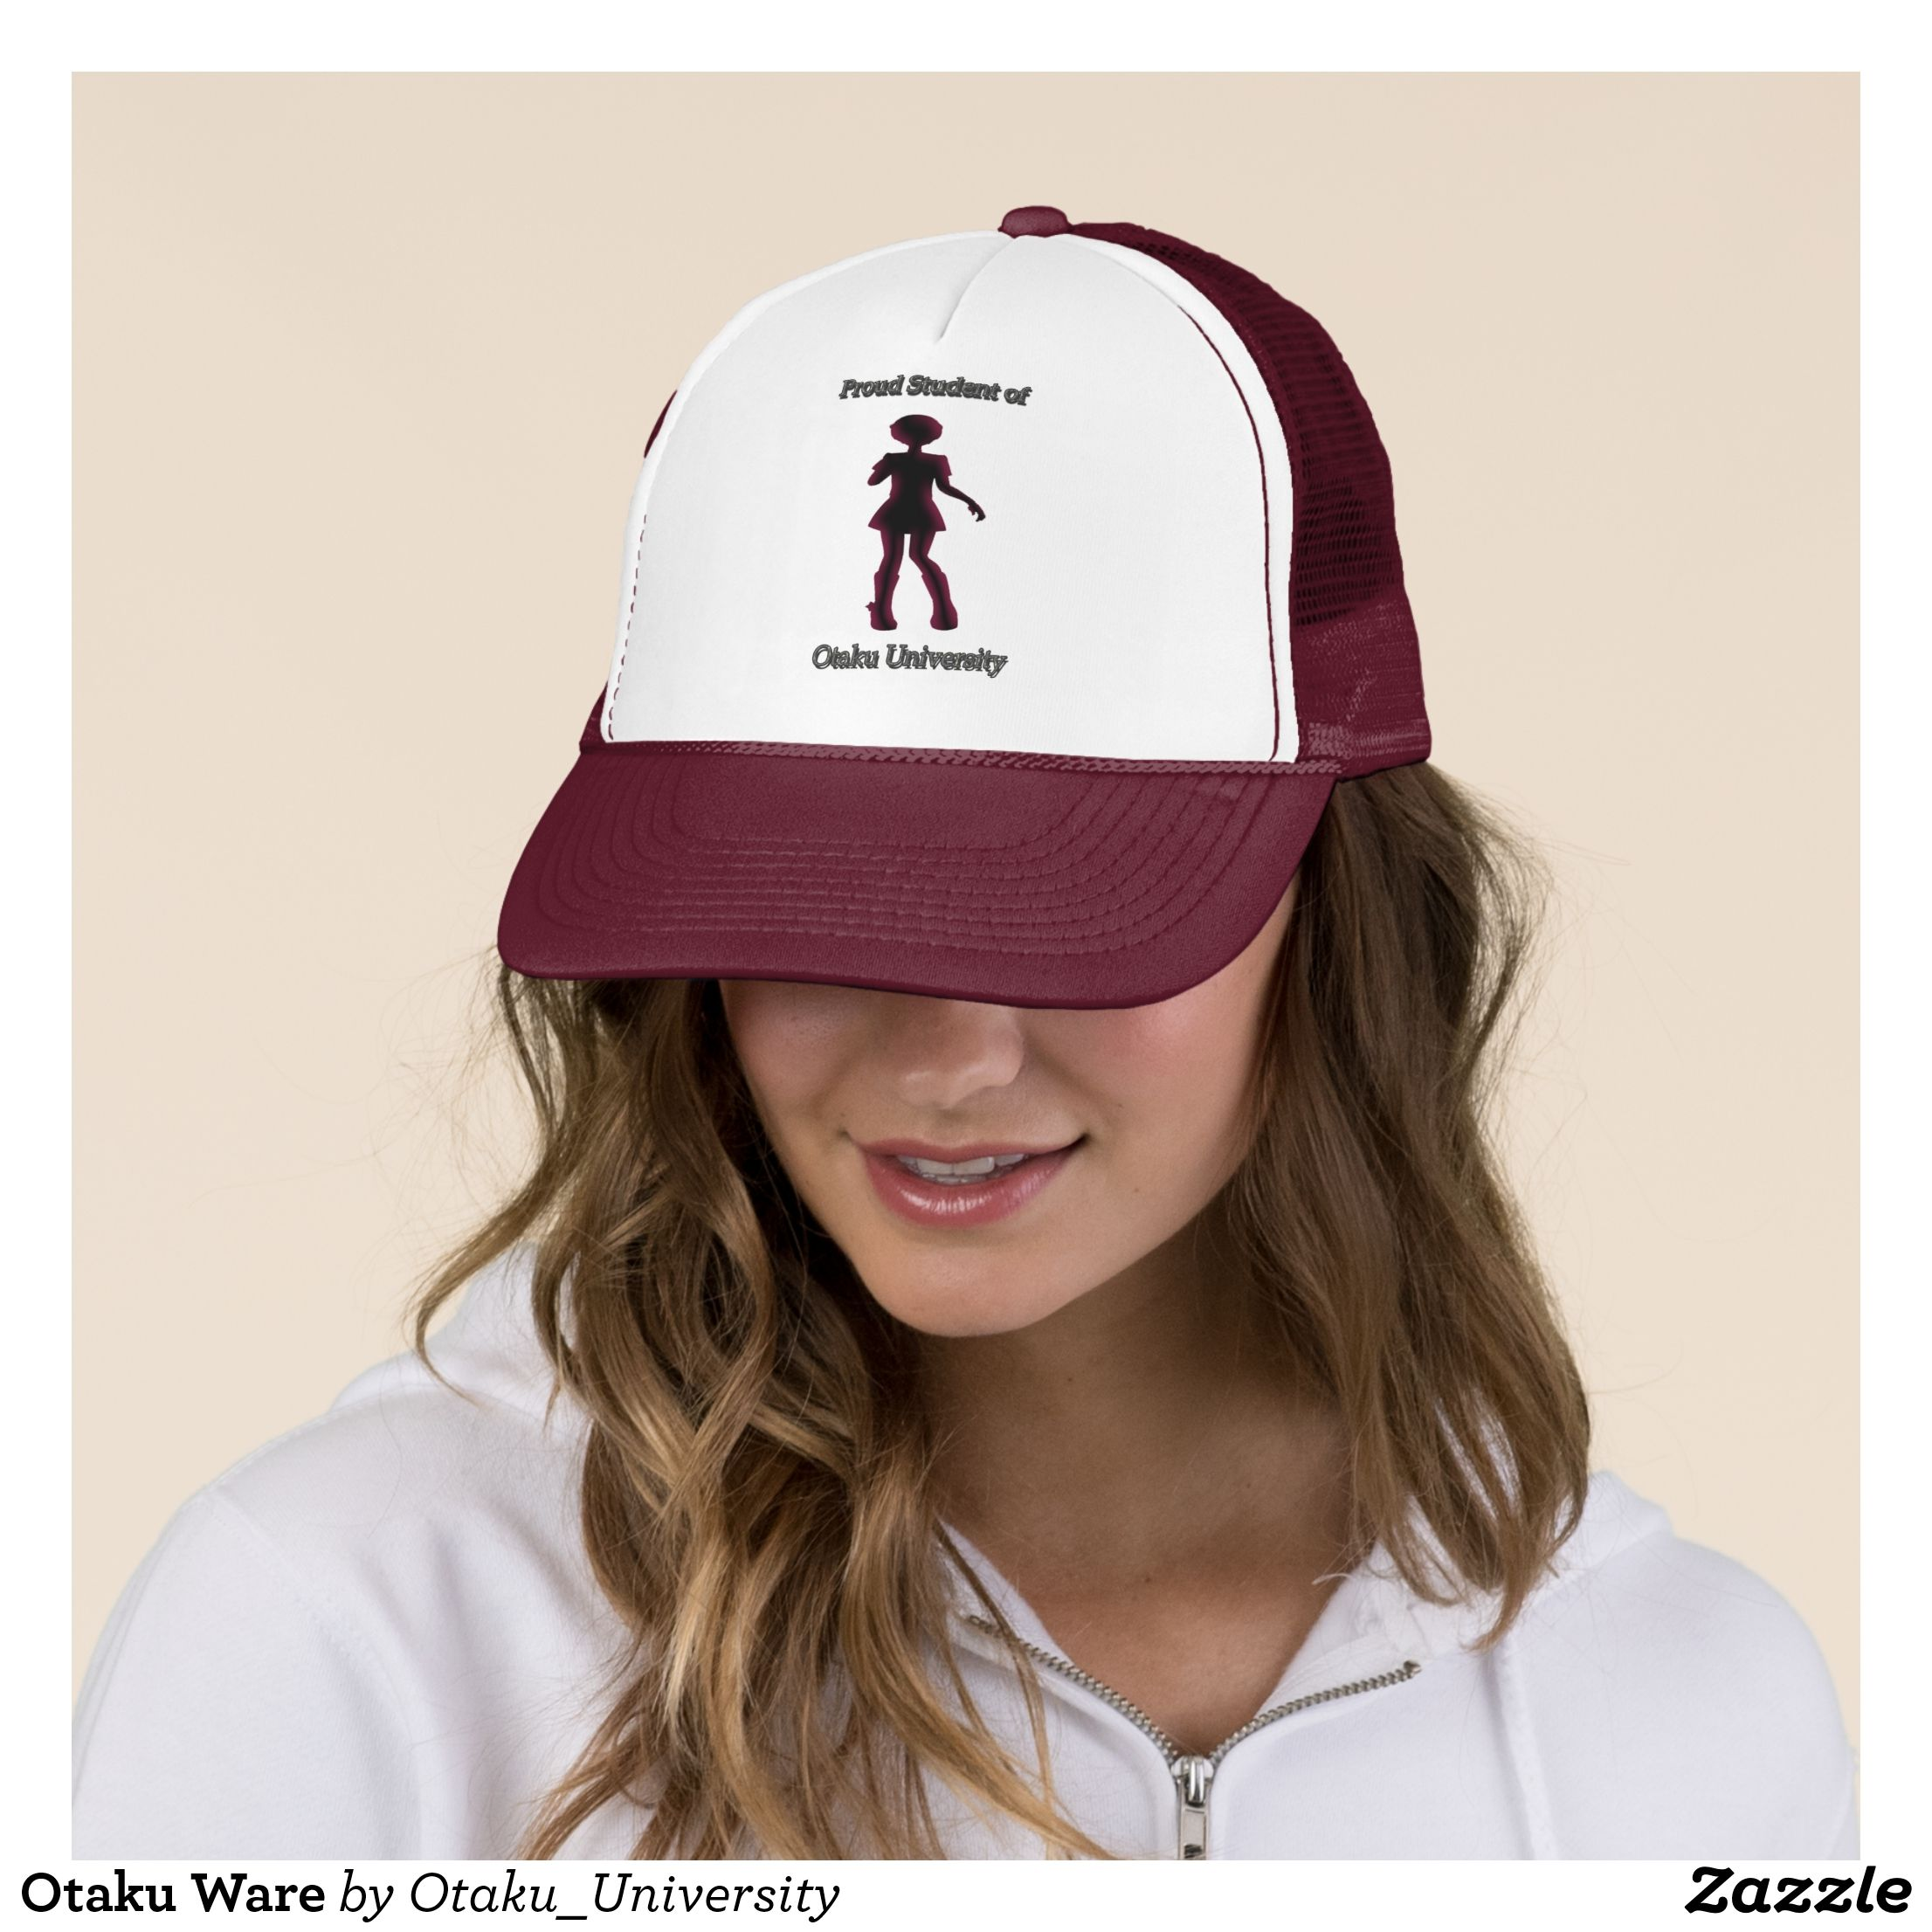 03a2b2c6b1bf6 Otaku Ware Trucker Hat - Urban Hunter Fisher Farmer Redneck Hats By  Talented Fashion And Graphic